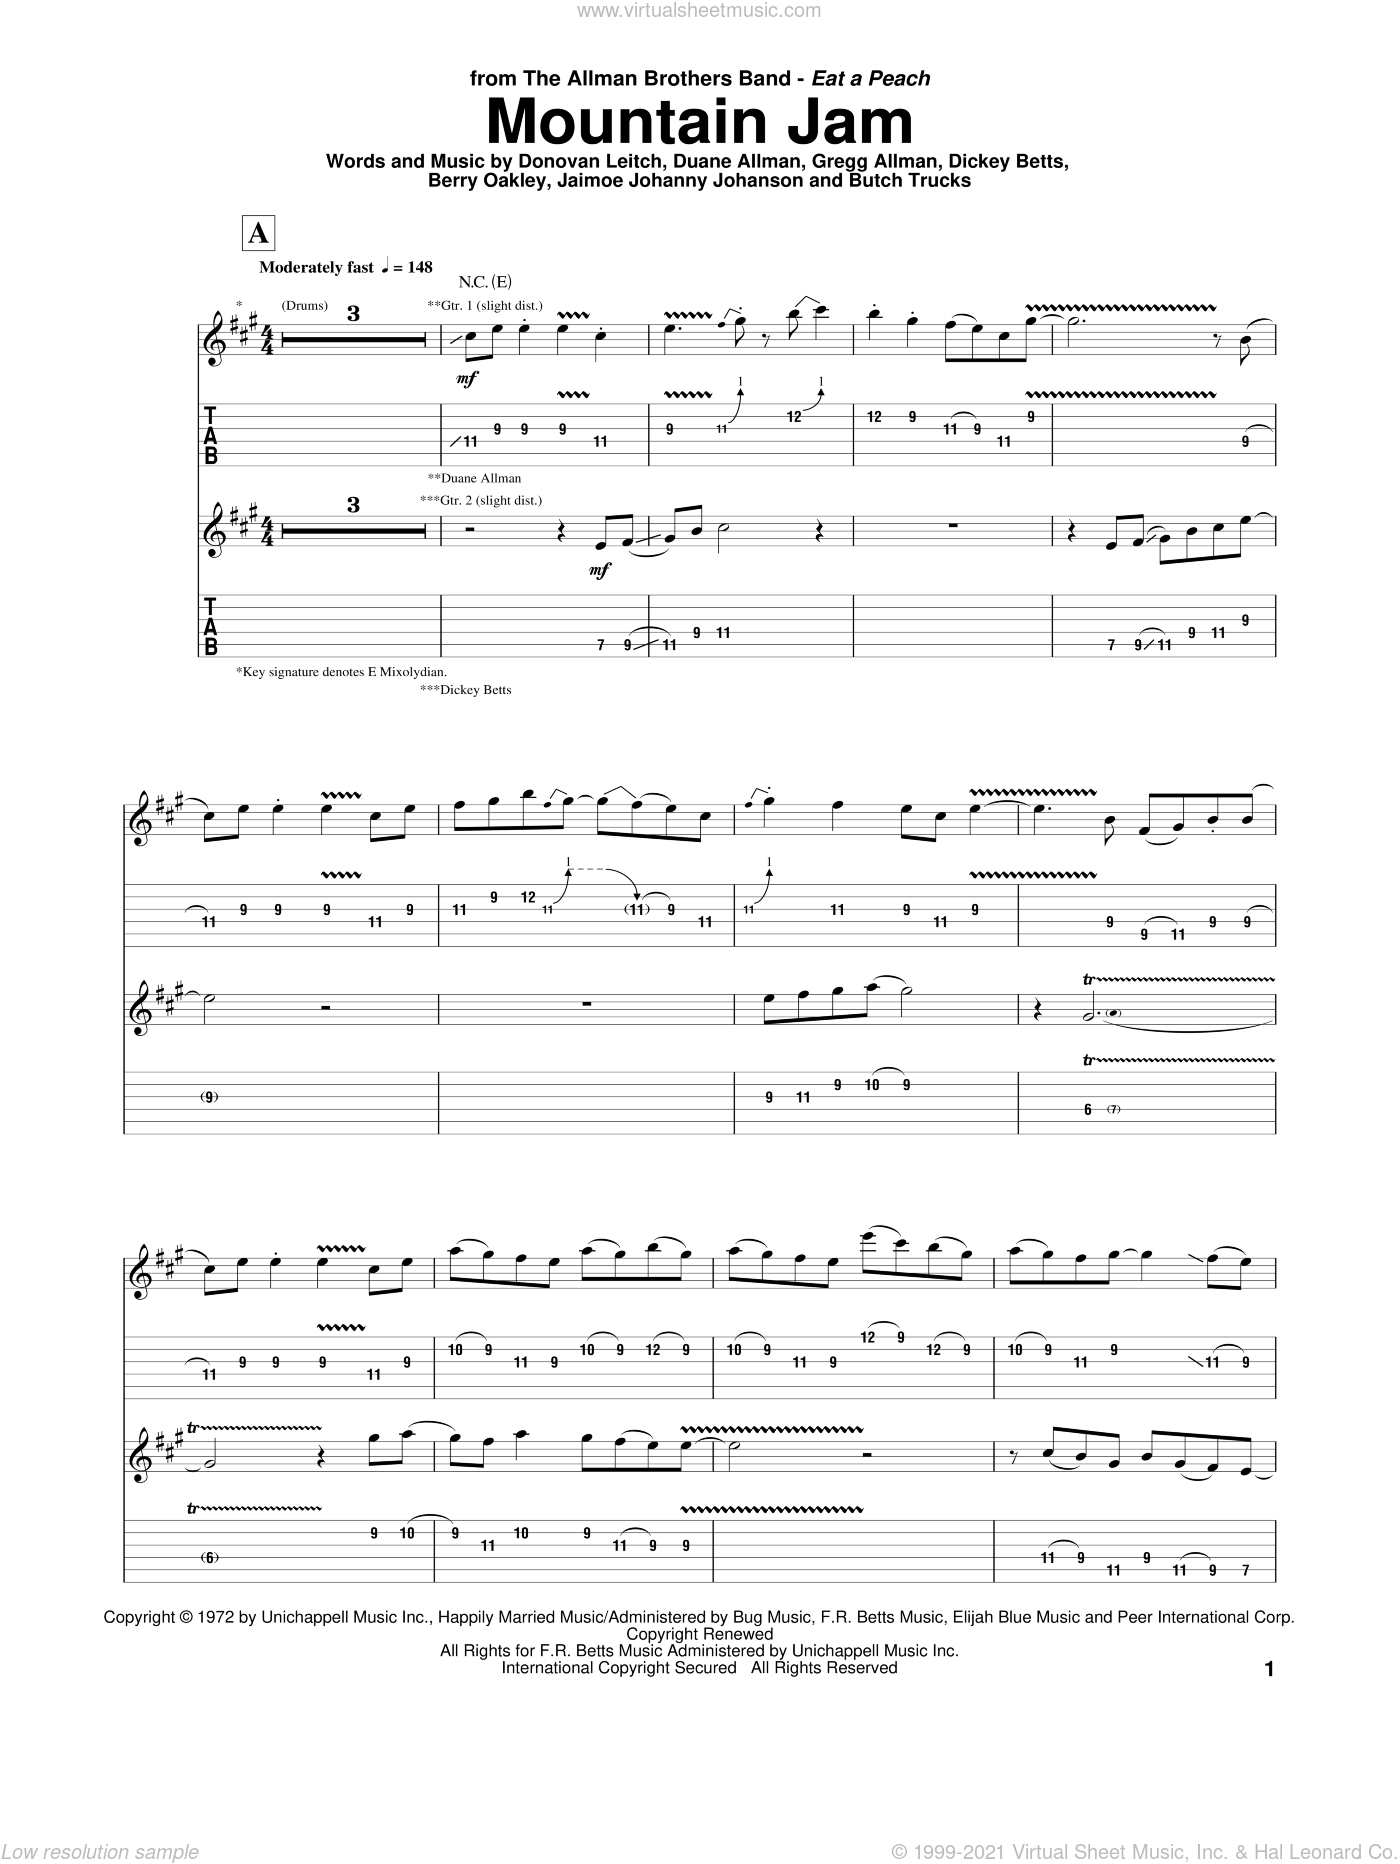 Mountain Jam sheet music for guitar (tablature) by Jaimoe Johanny Johanson